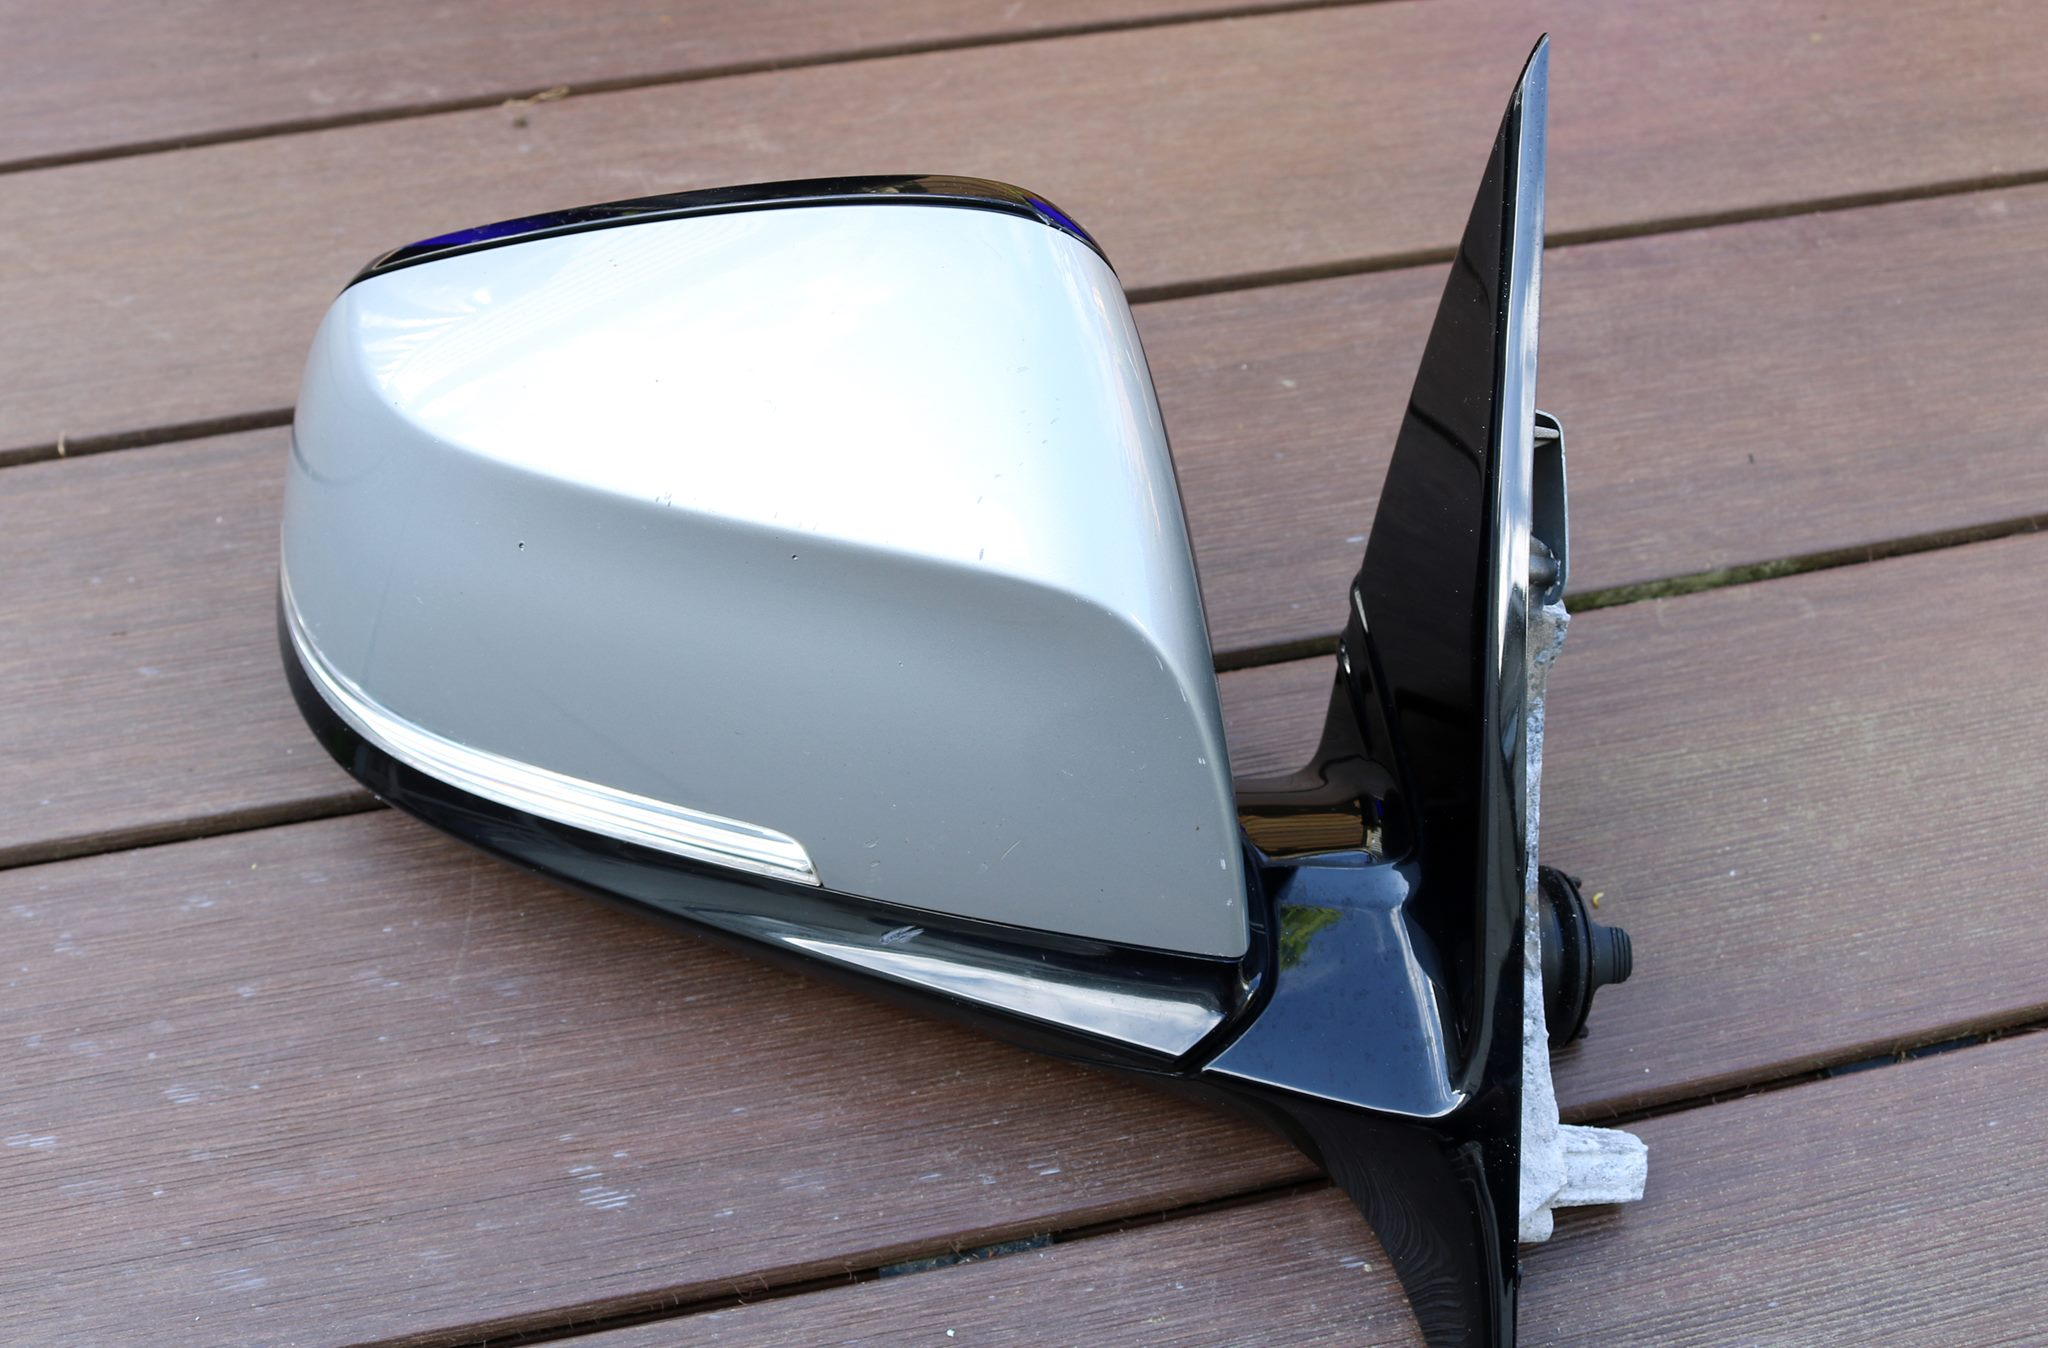 2013 Bmw 328I Windshield Replacement Cost bmw wing mirror 2013 3 series drivers side | trade me